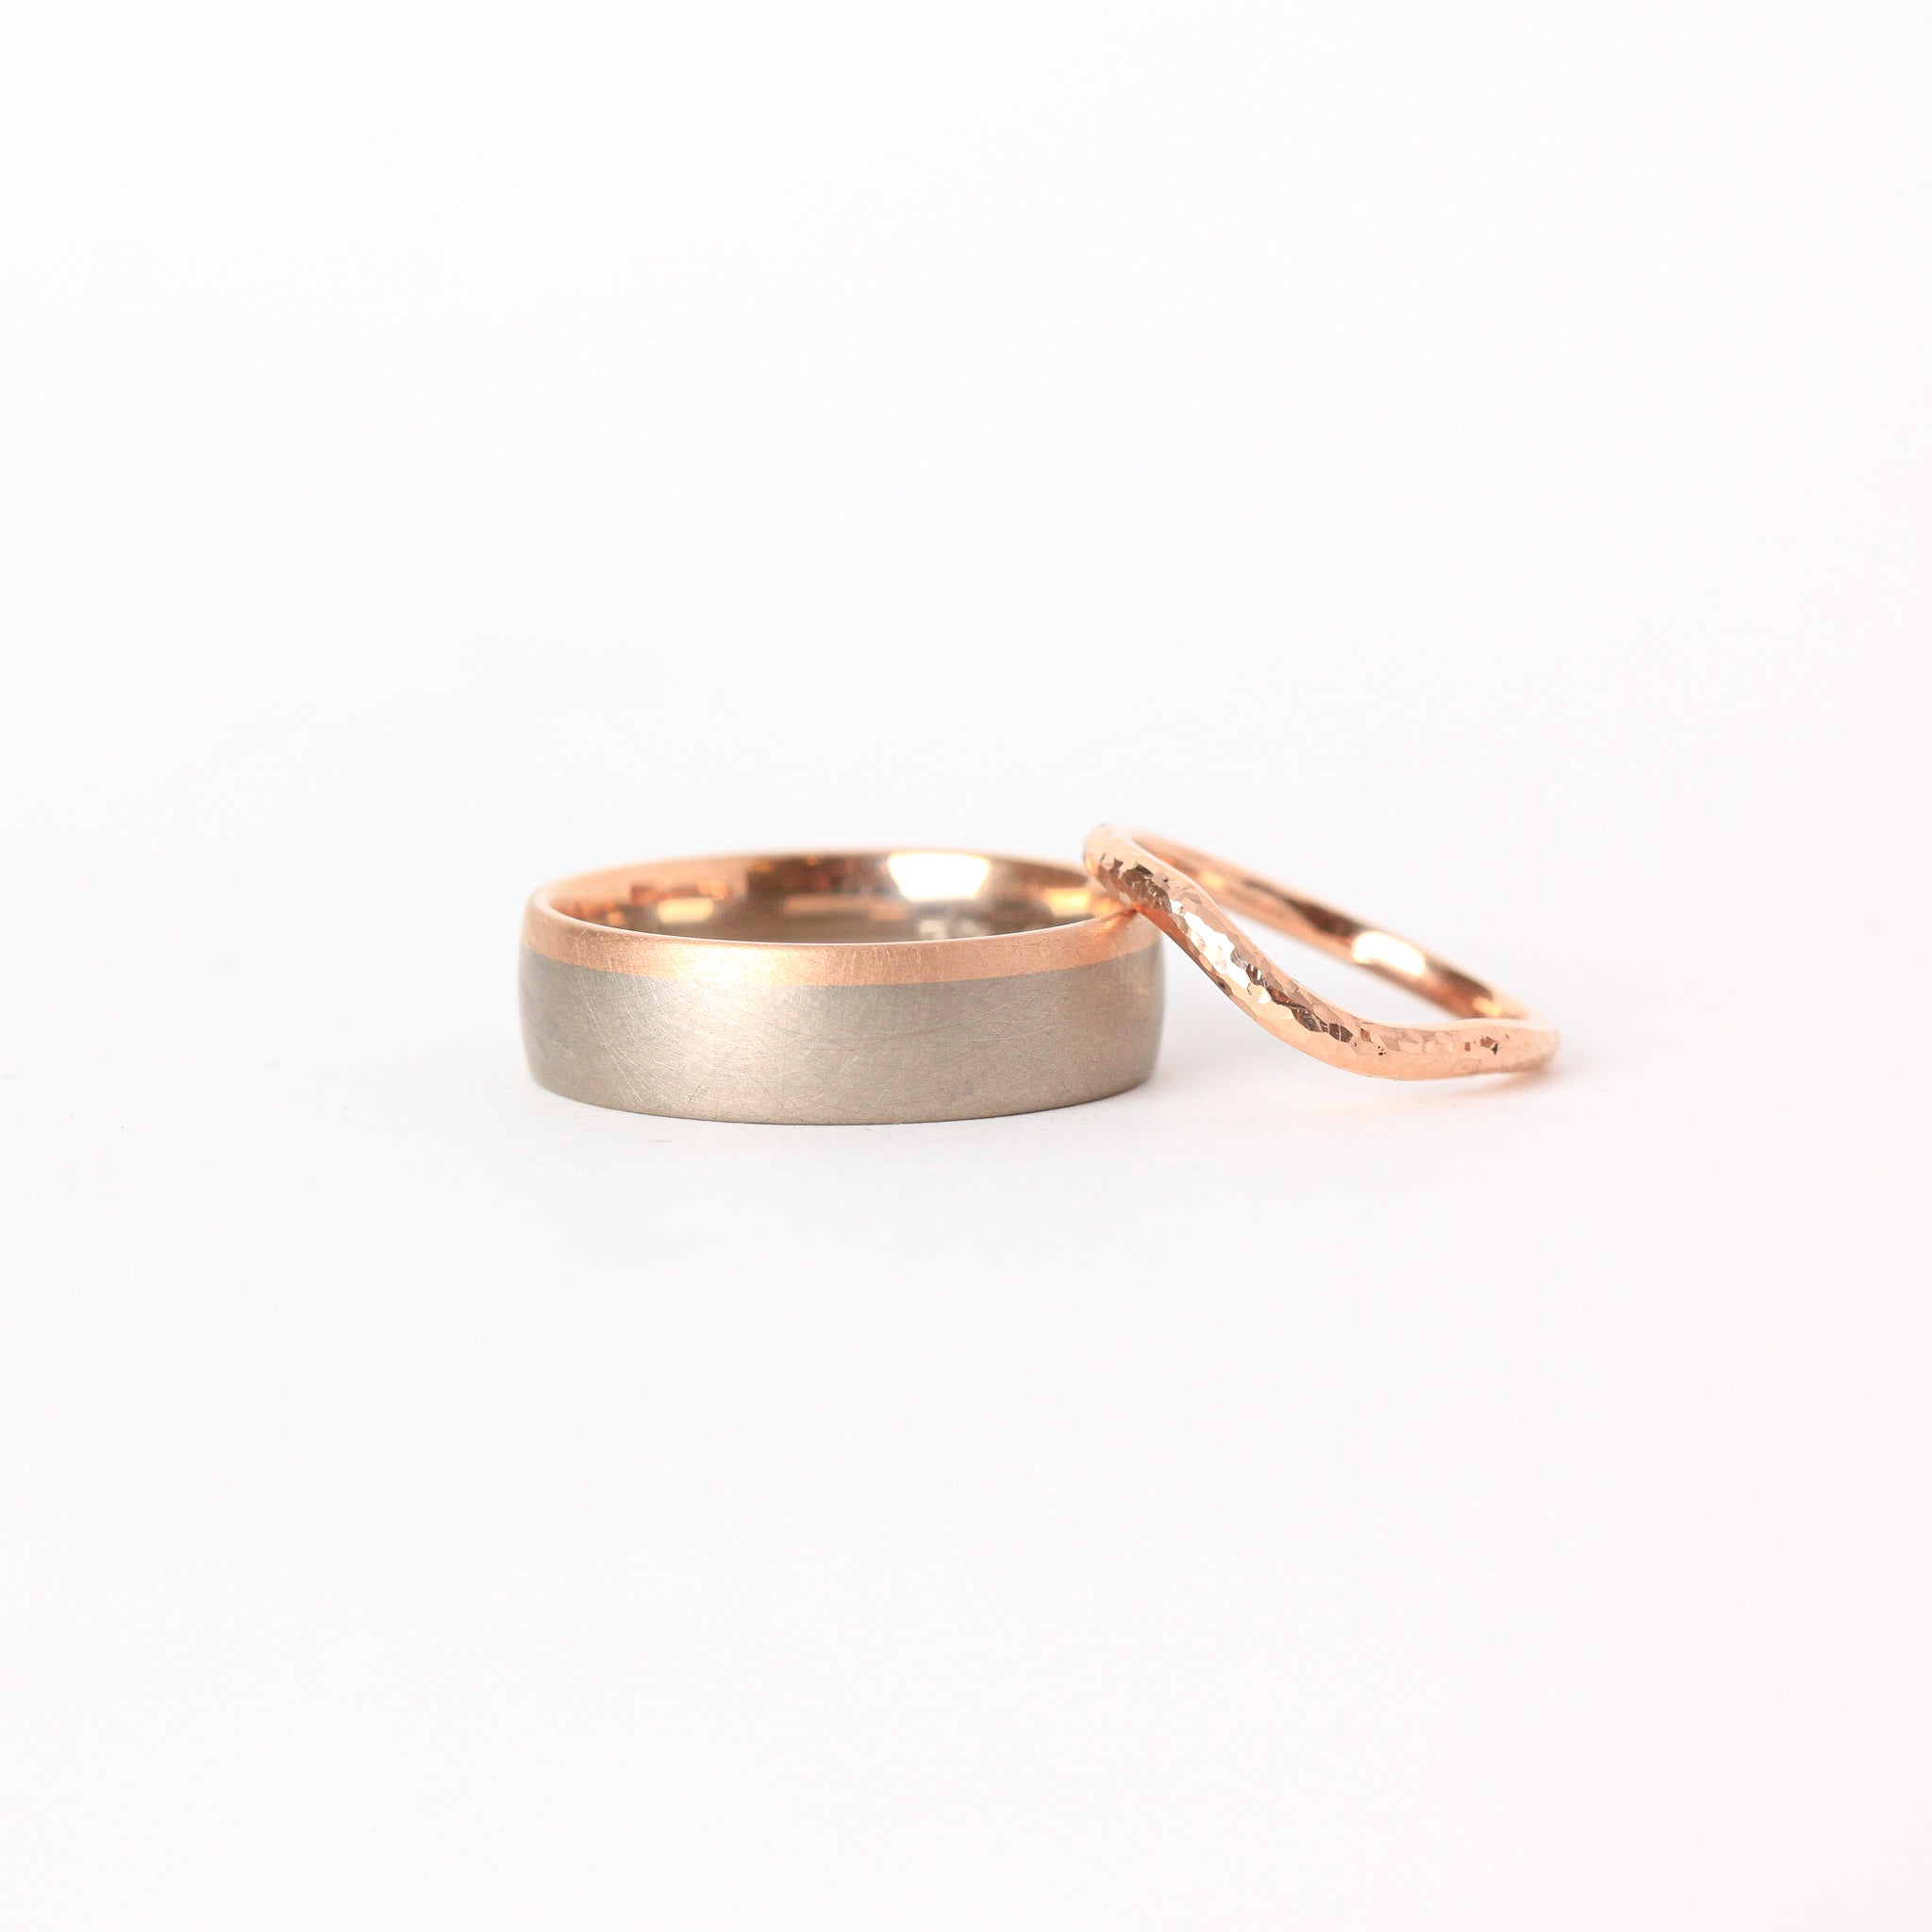 Handmade Wedding Band in 18ct White and Rose Gold